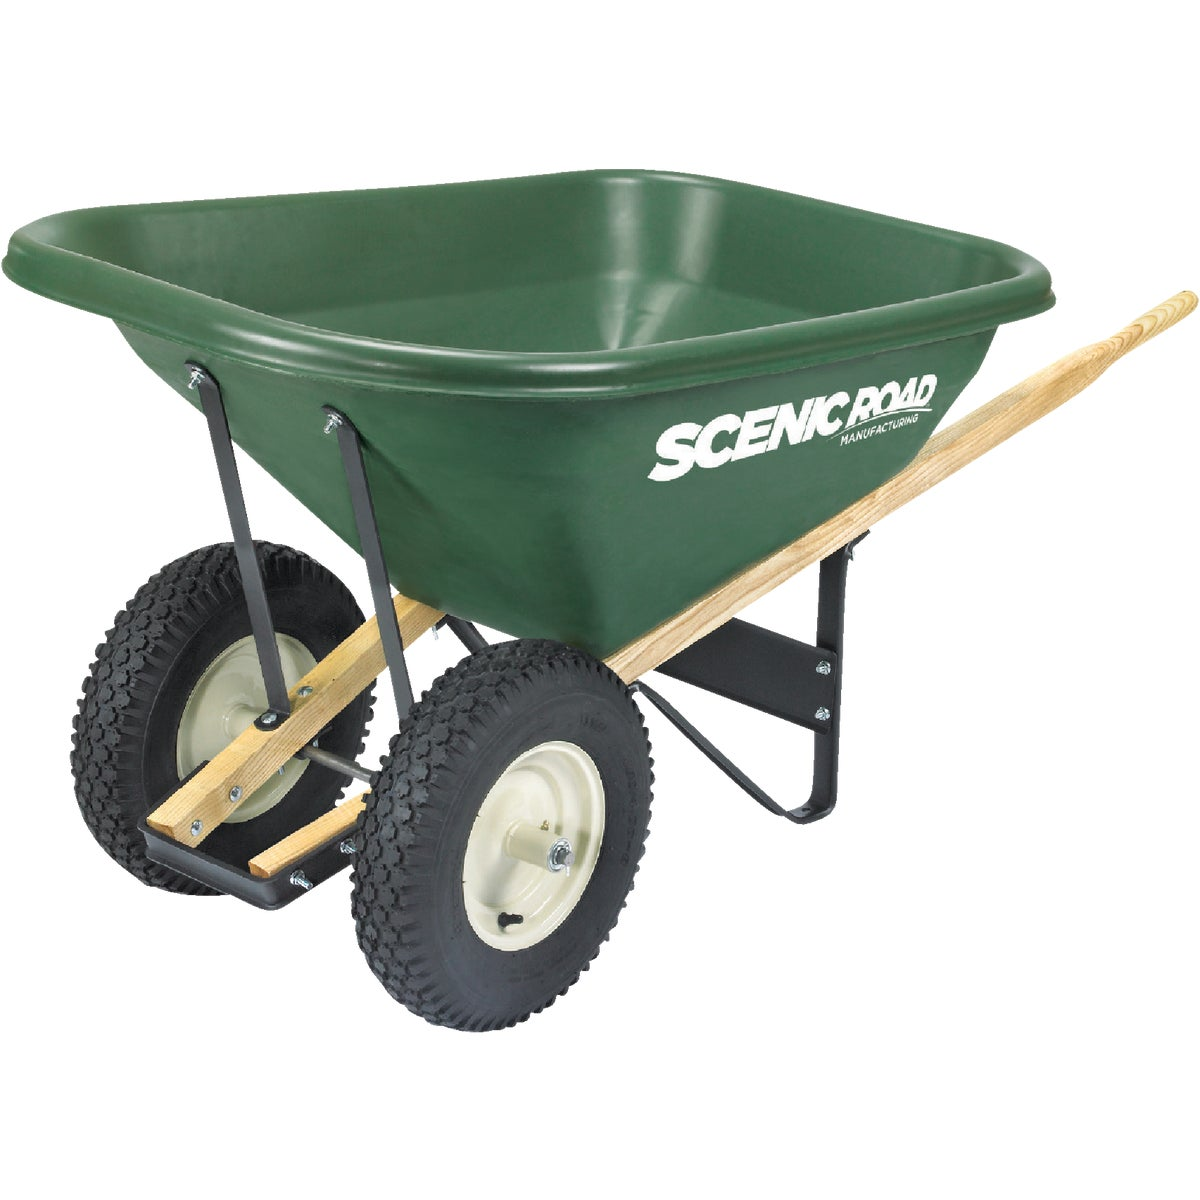 7 CUFT DUAL WHEELBARROW - SL7-2K by Scenic Road Mfg